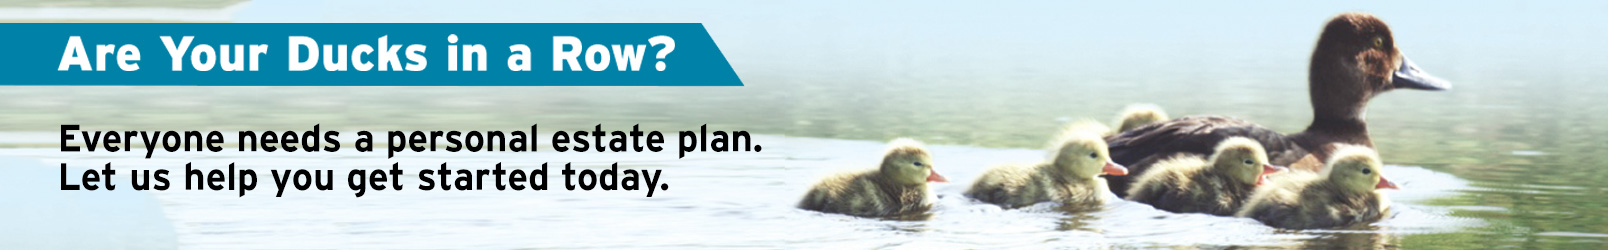 Are Your Ducks in a Row? Planned Giving